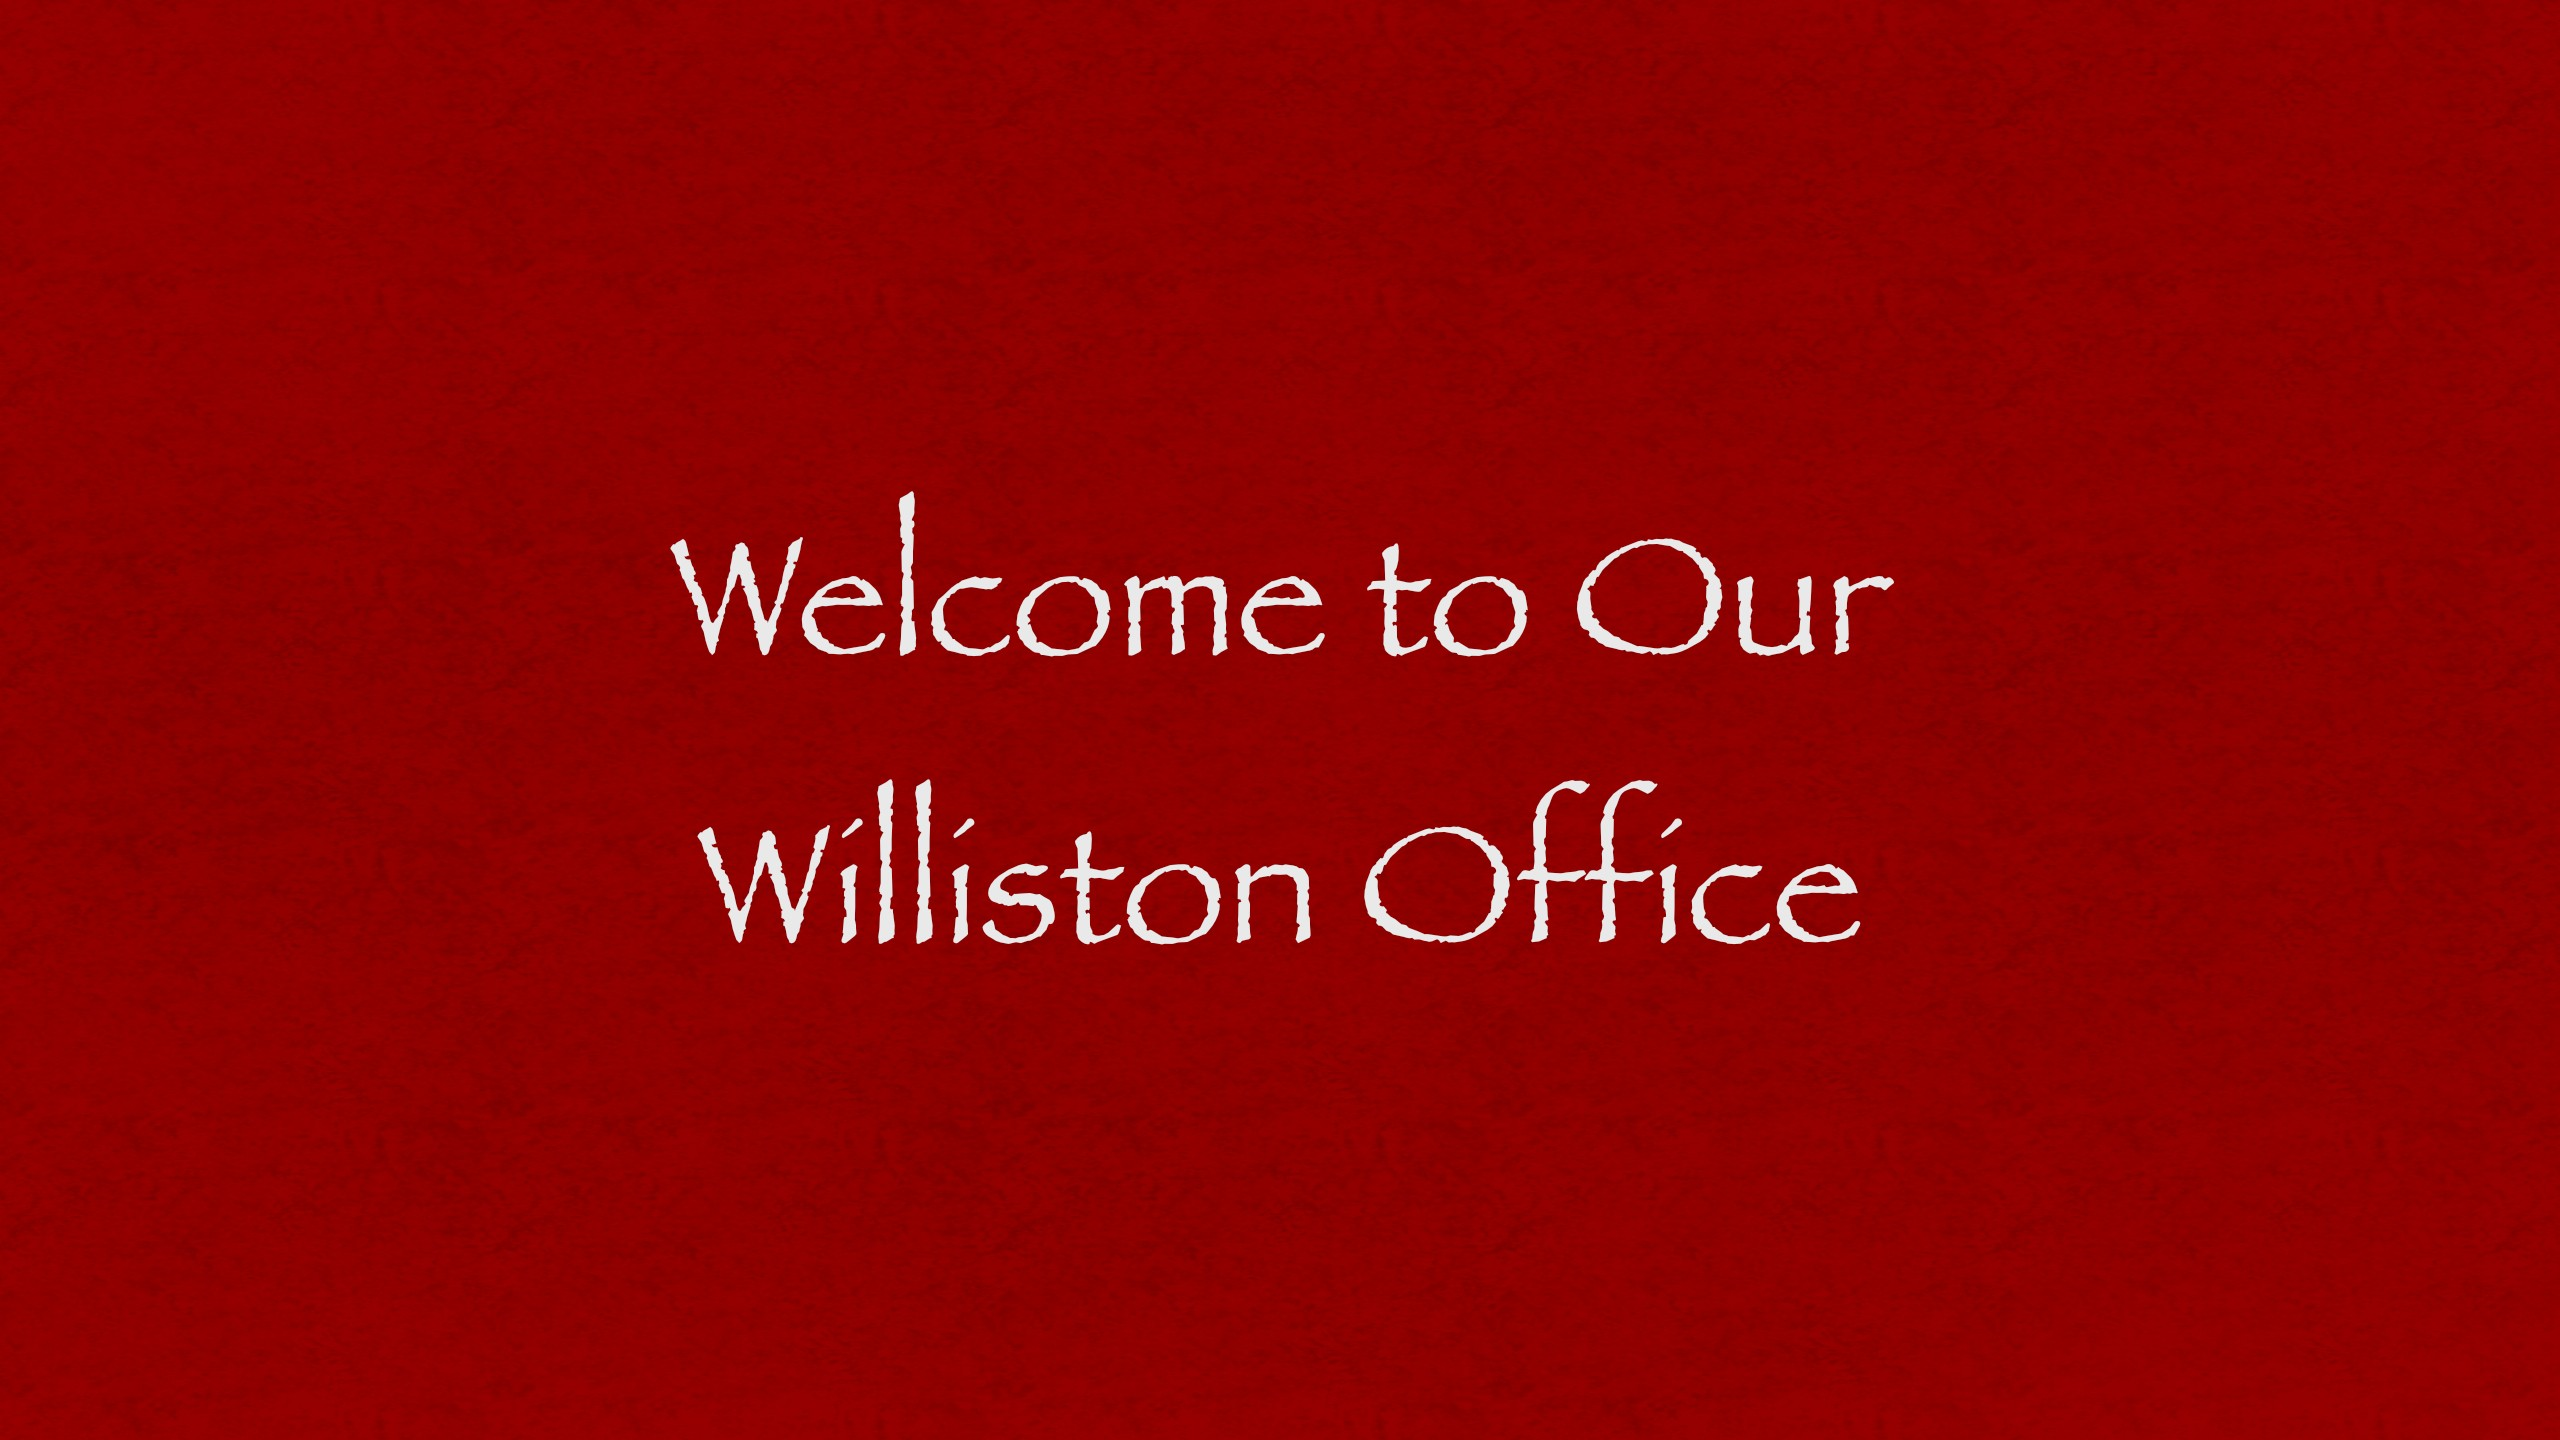 Welcome To Our Williston Office